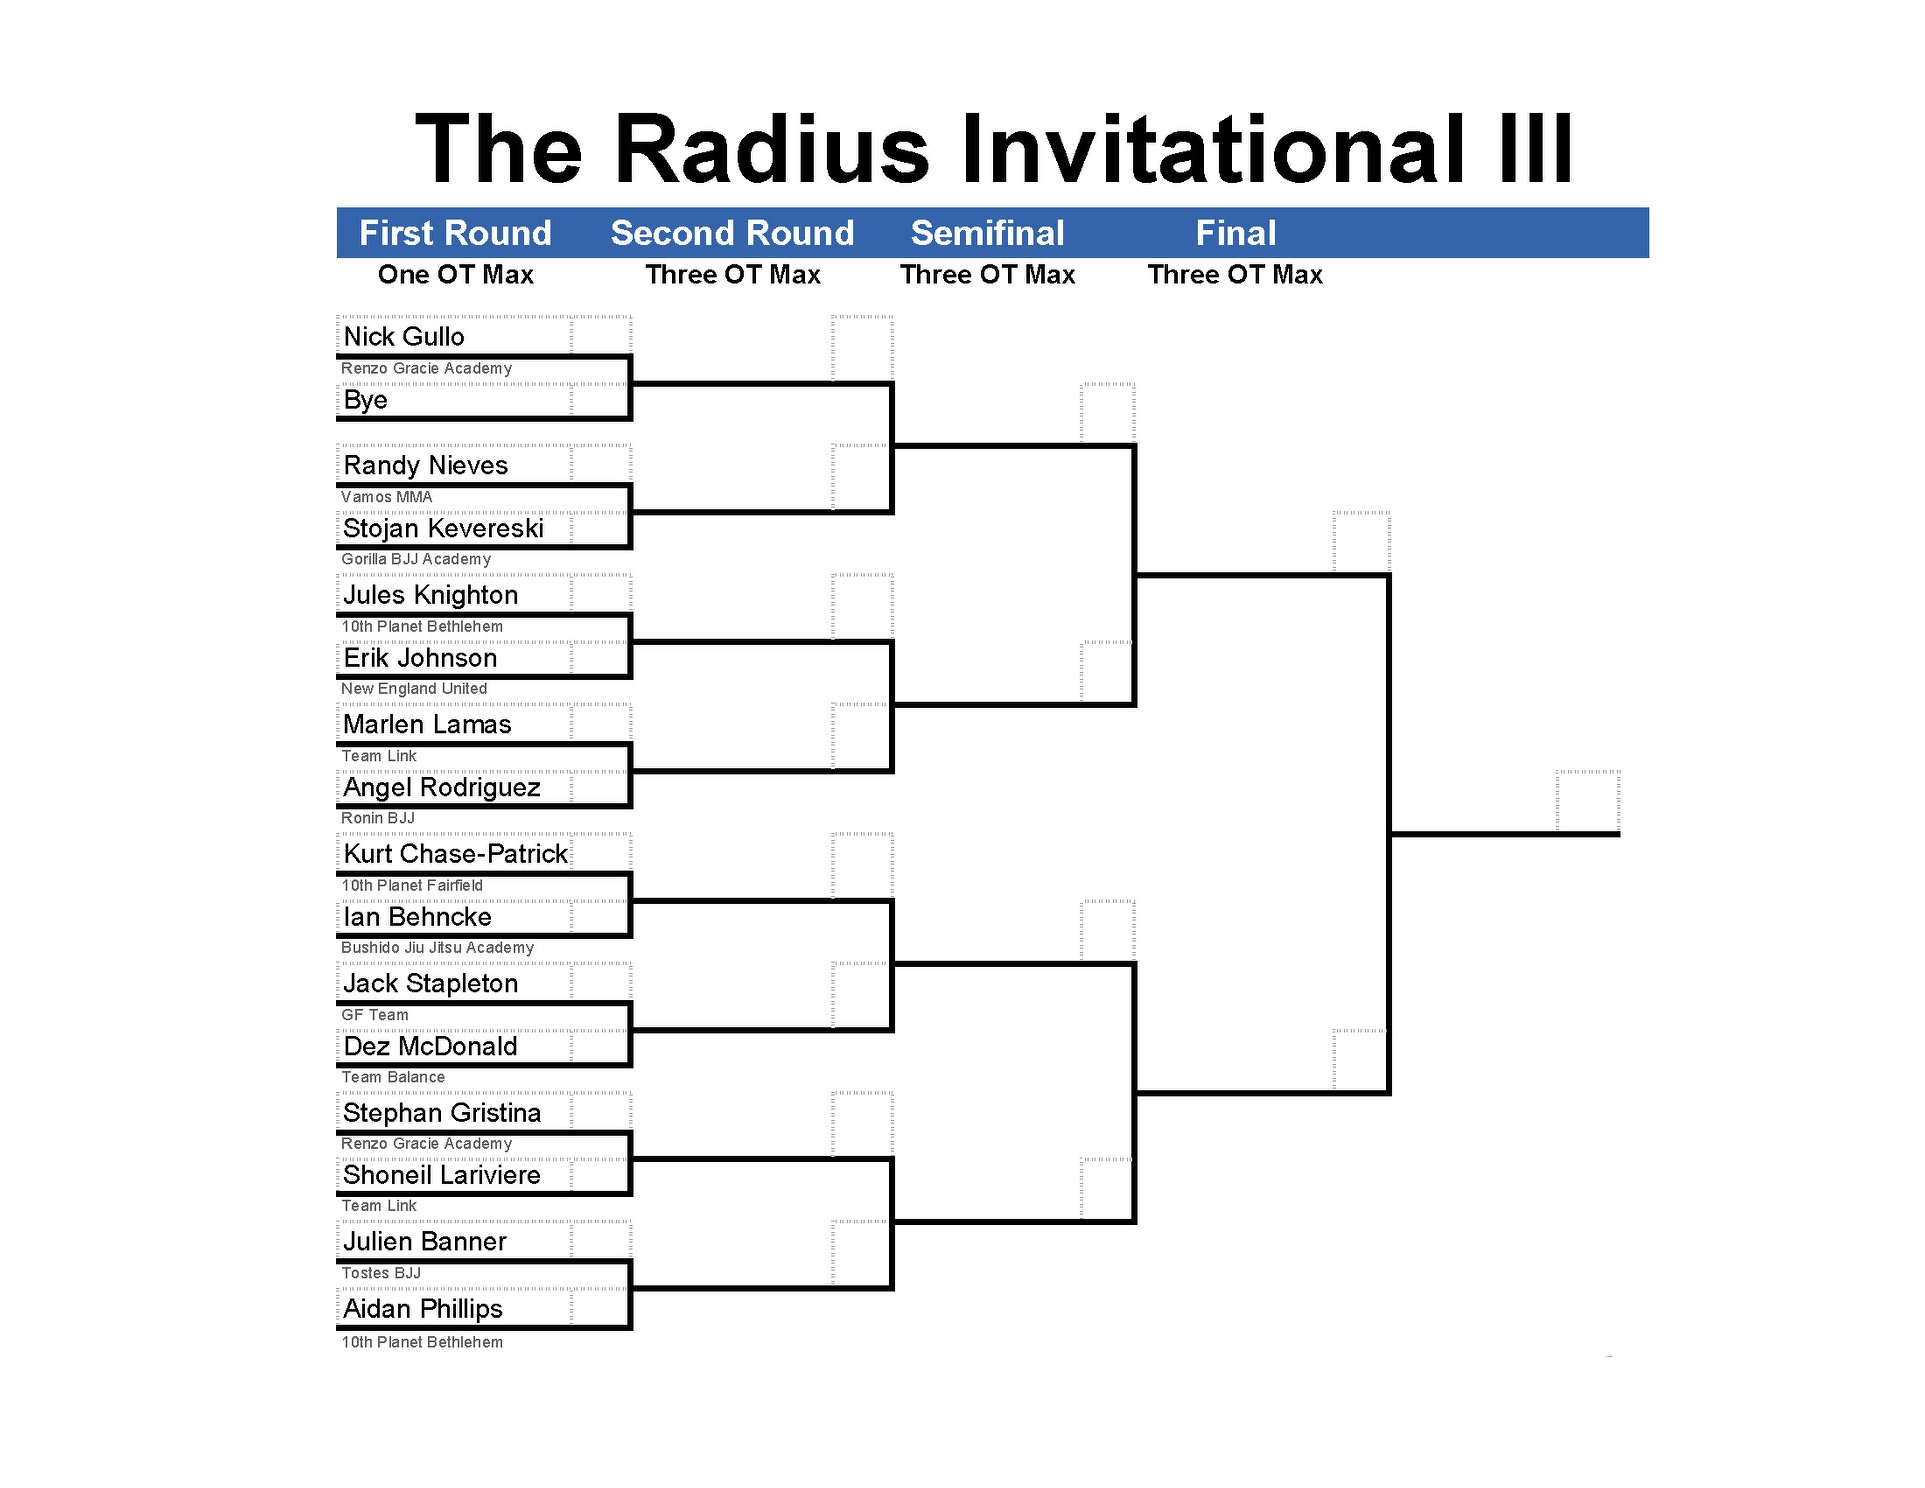 Radius International 3 bracket